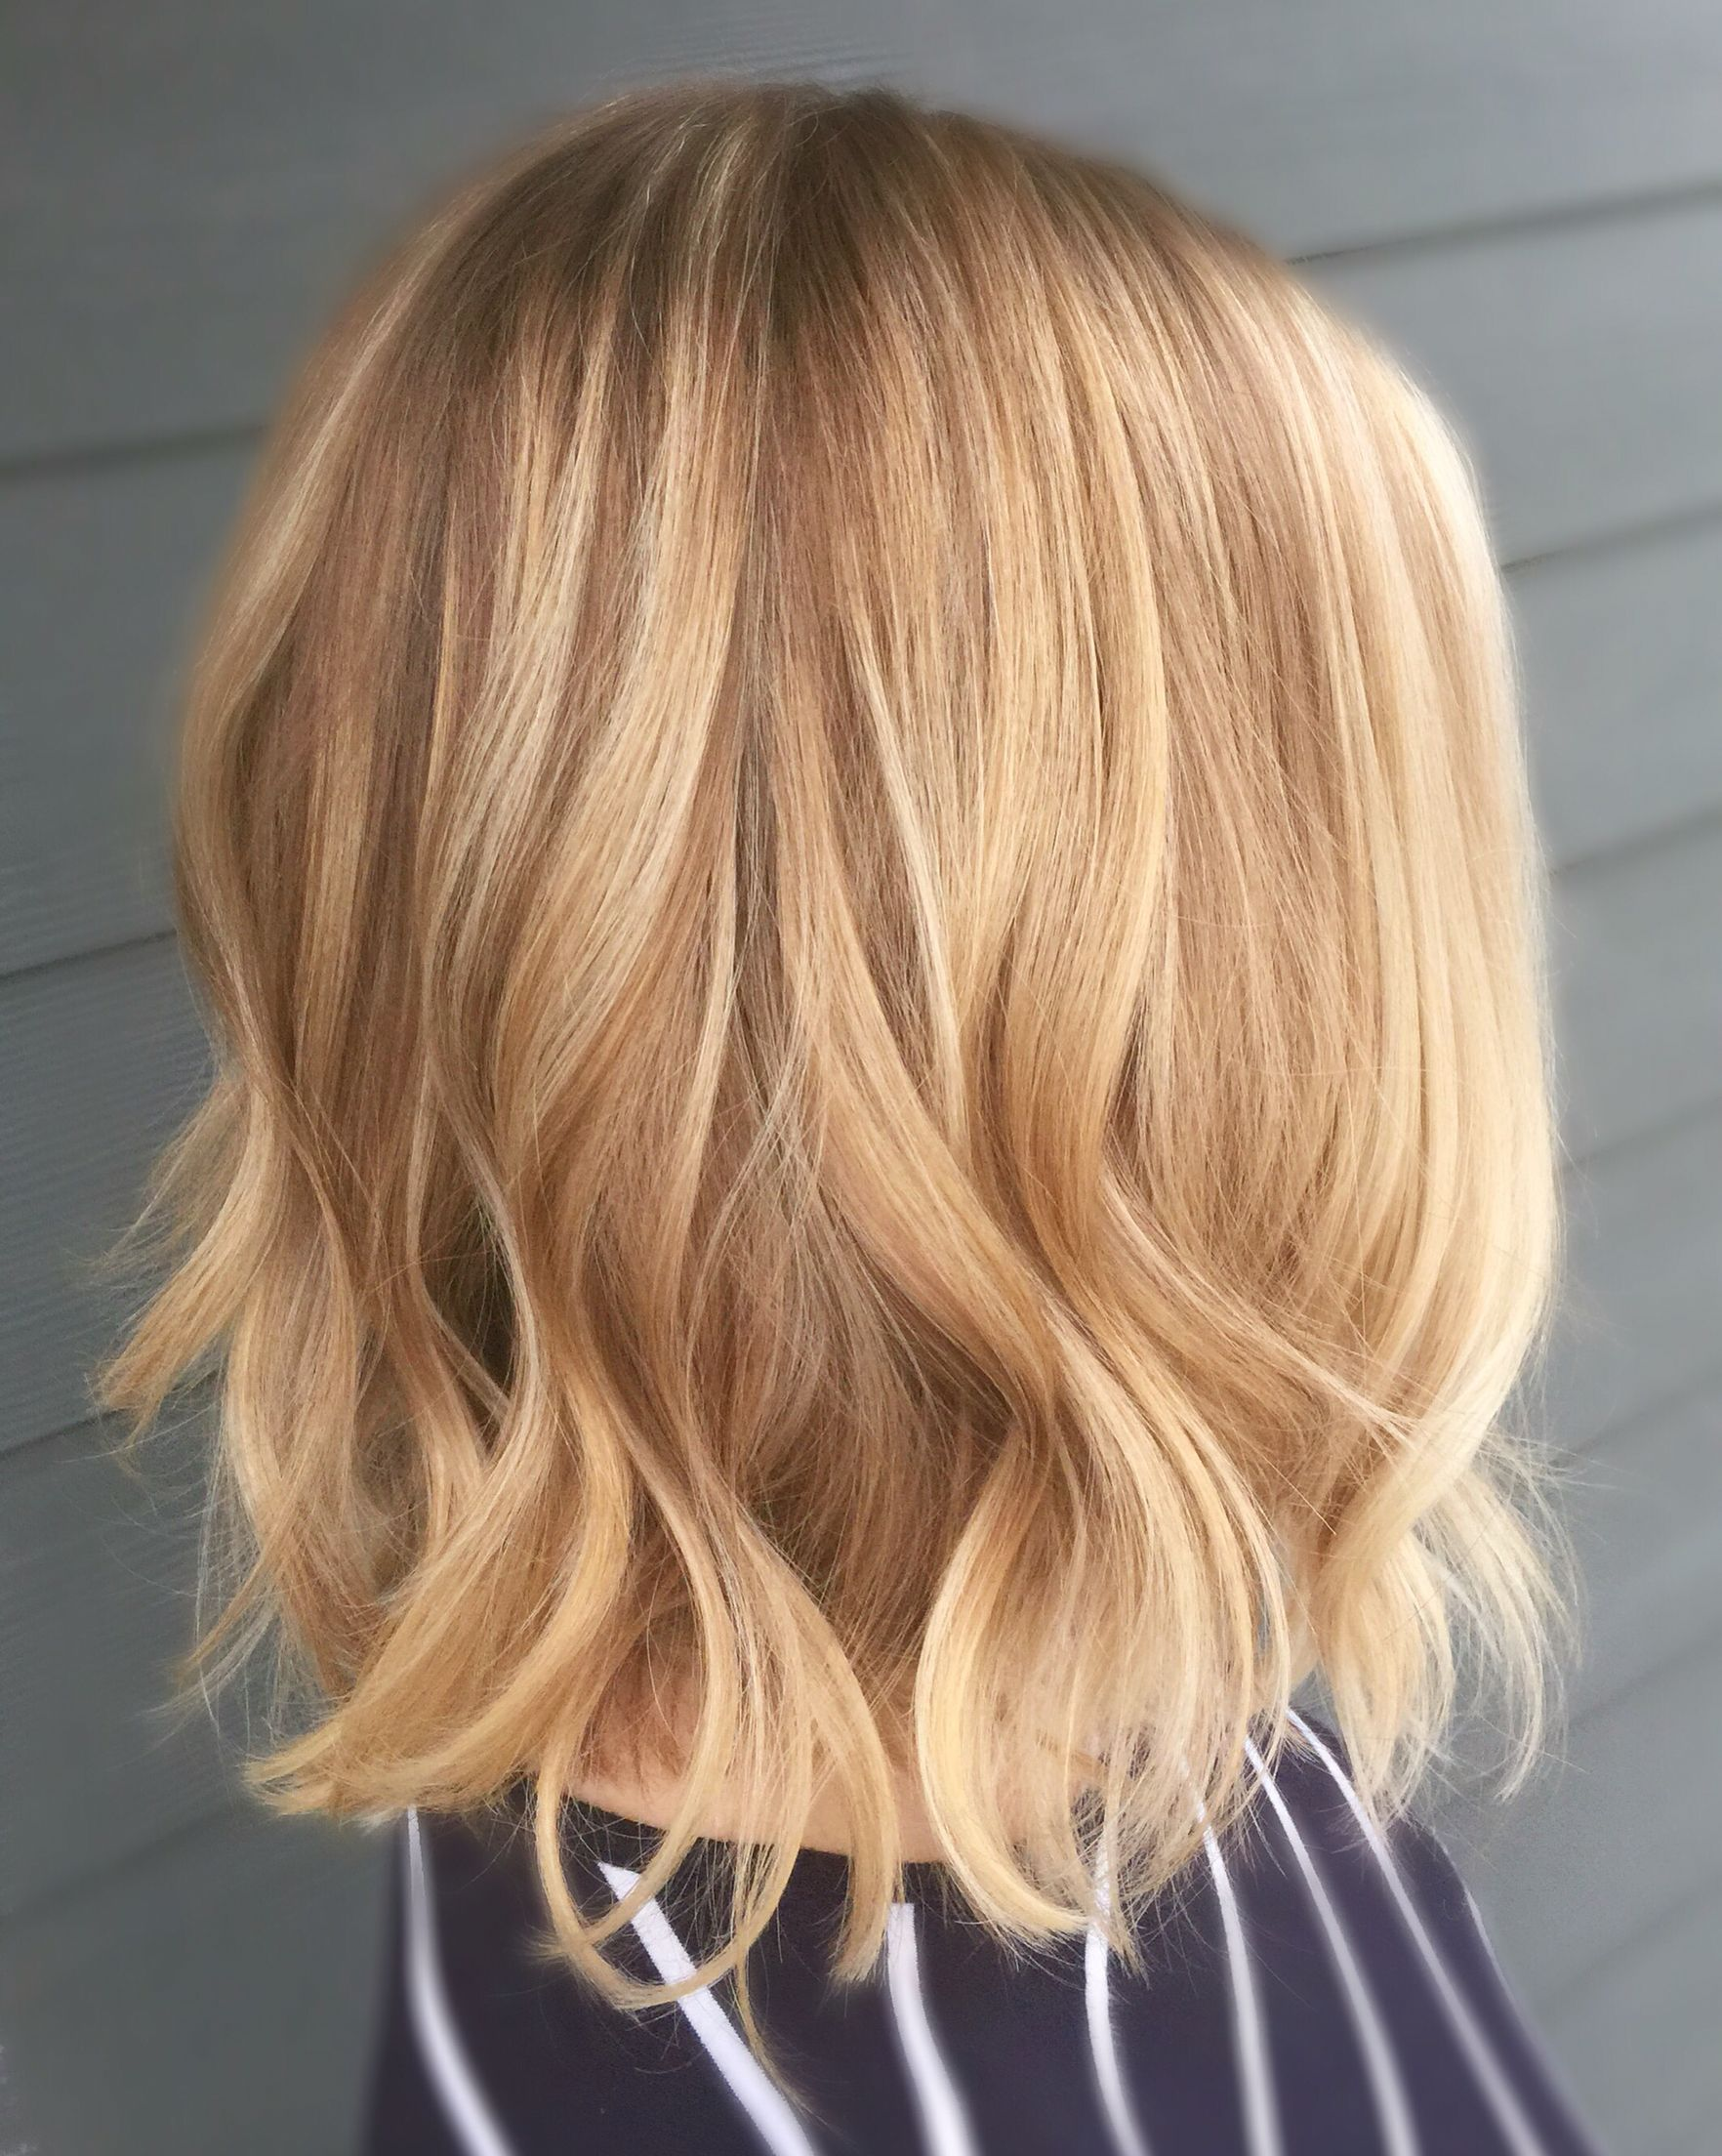 Blonde Balayage Short Hair Wavy Lob Curled Hair Honey